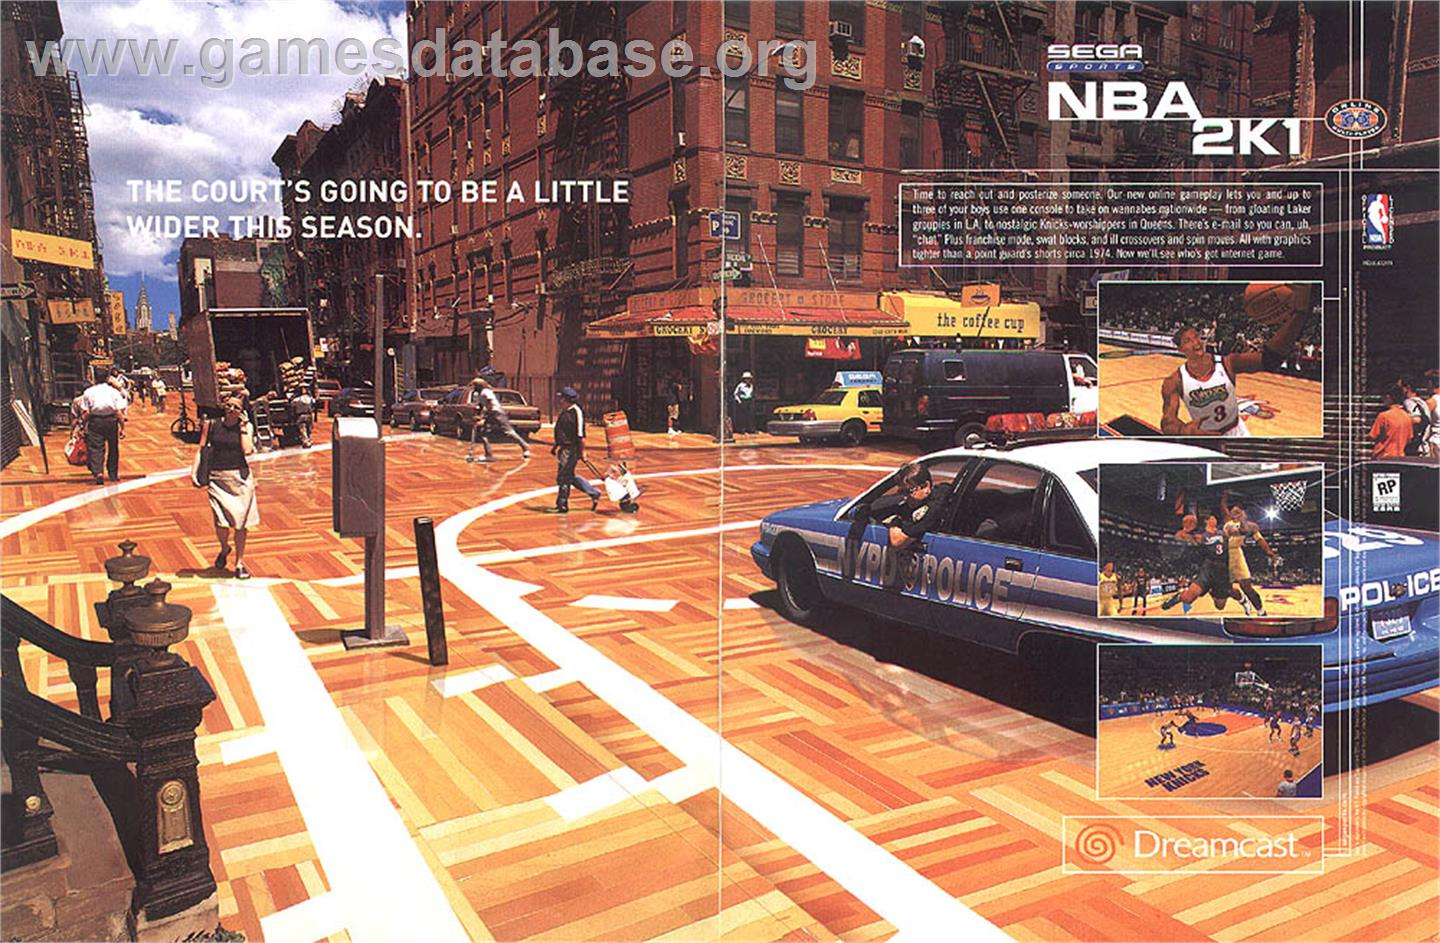 NBA 2K1 - Sega Dreamcast - Artwork - Advert